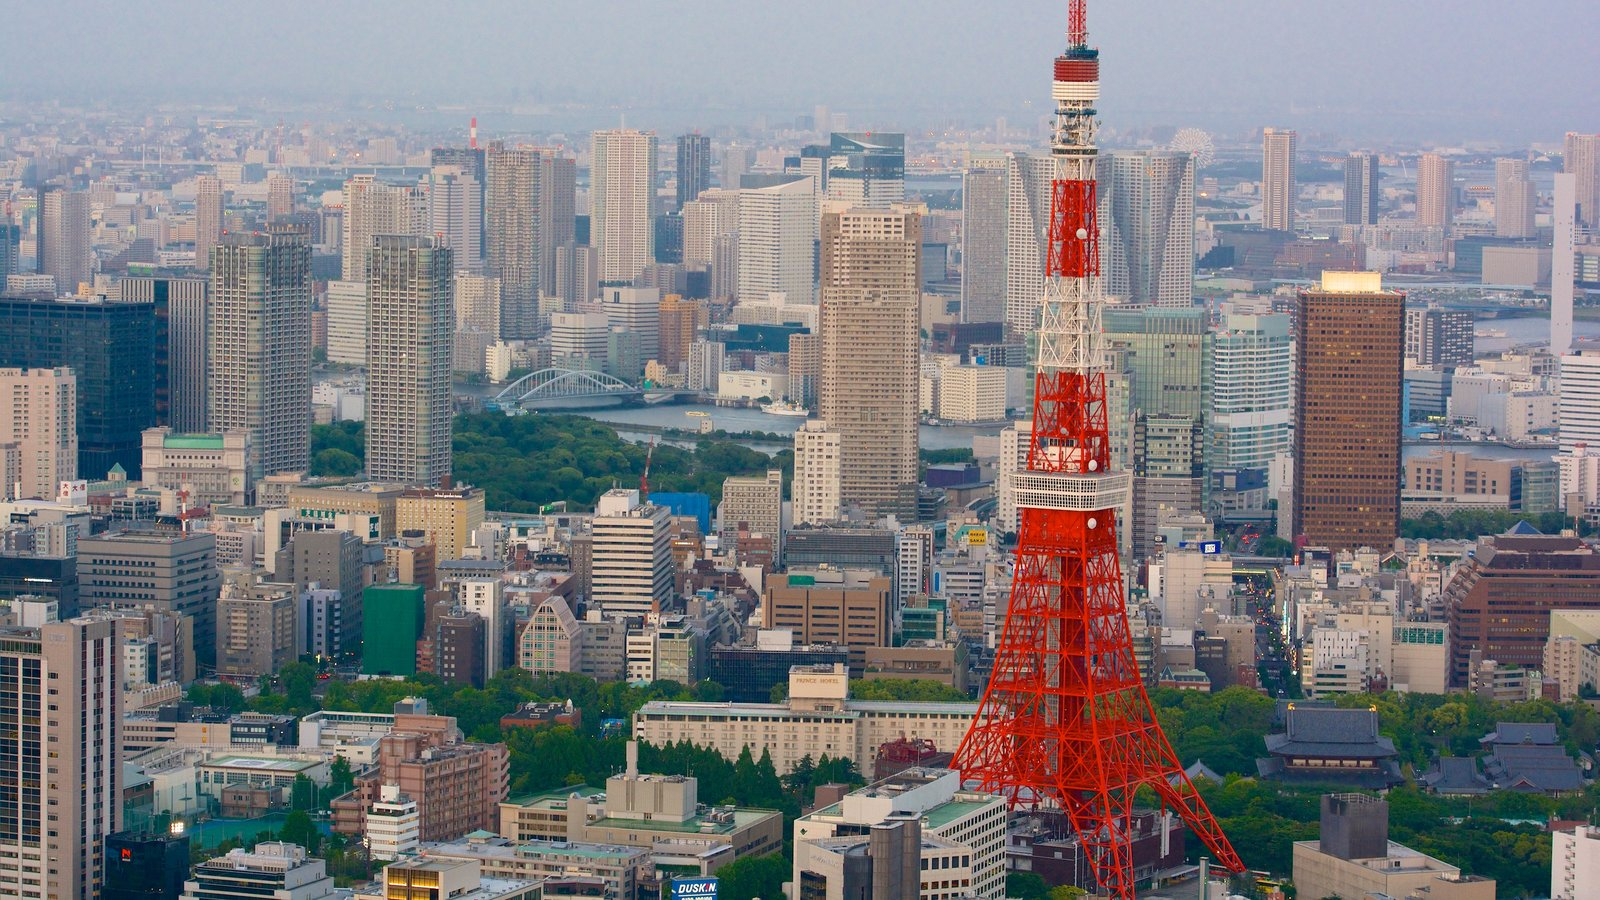 Modern Architecture Tokyo modern architecture pictures: view images of tokyo tower